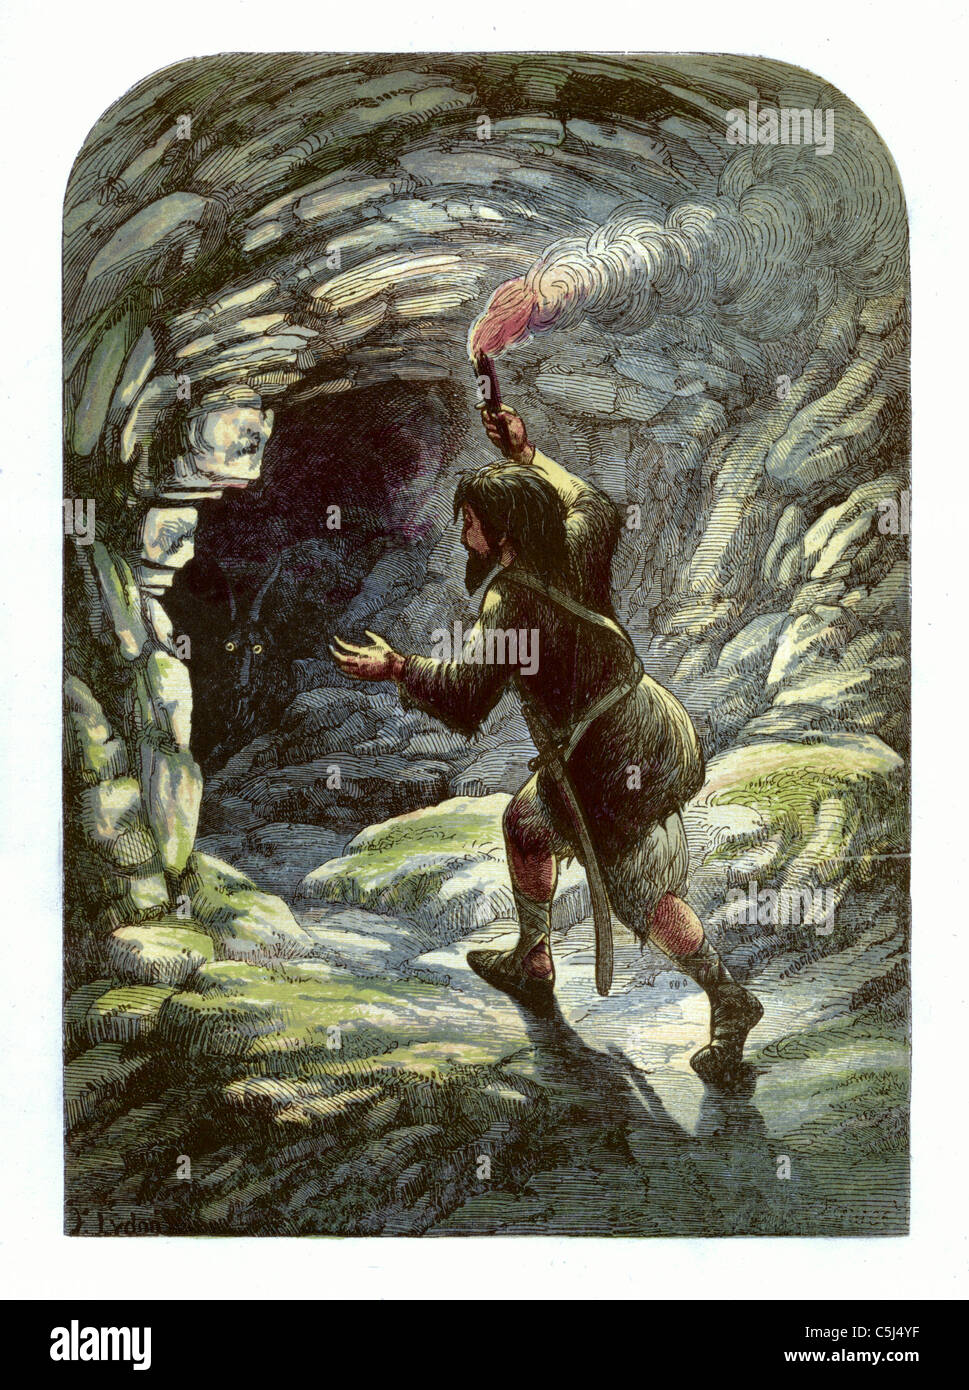 'Robinson Crusoe frightened by a goat in a cave'  Robinson Crusoe illustration from 1865 - Daniel Defoe, - Stock Image